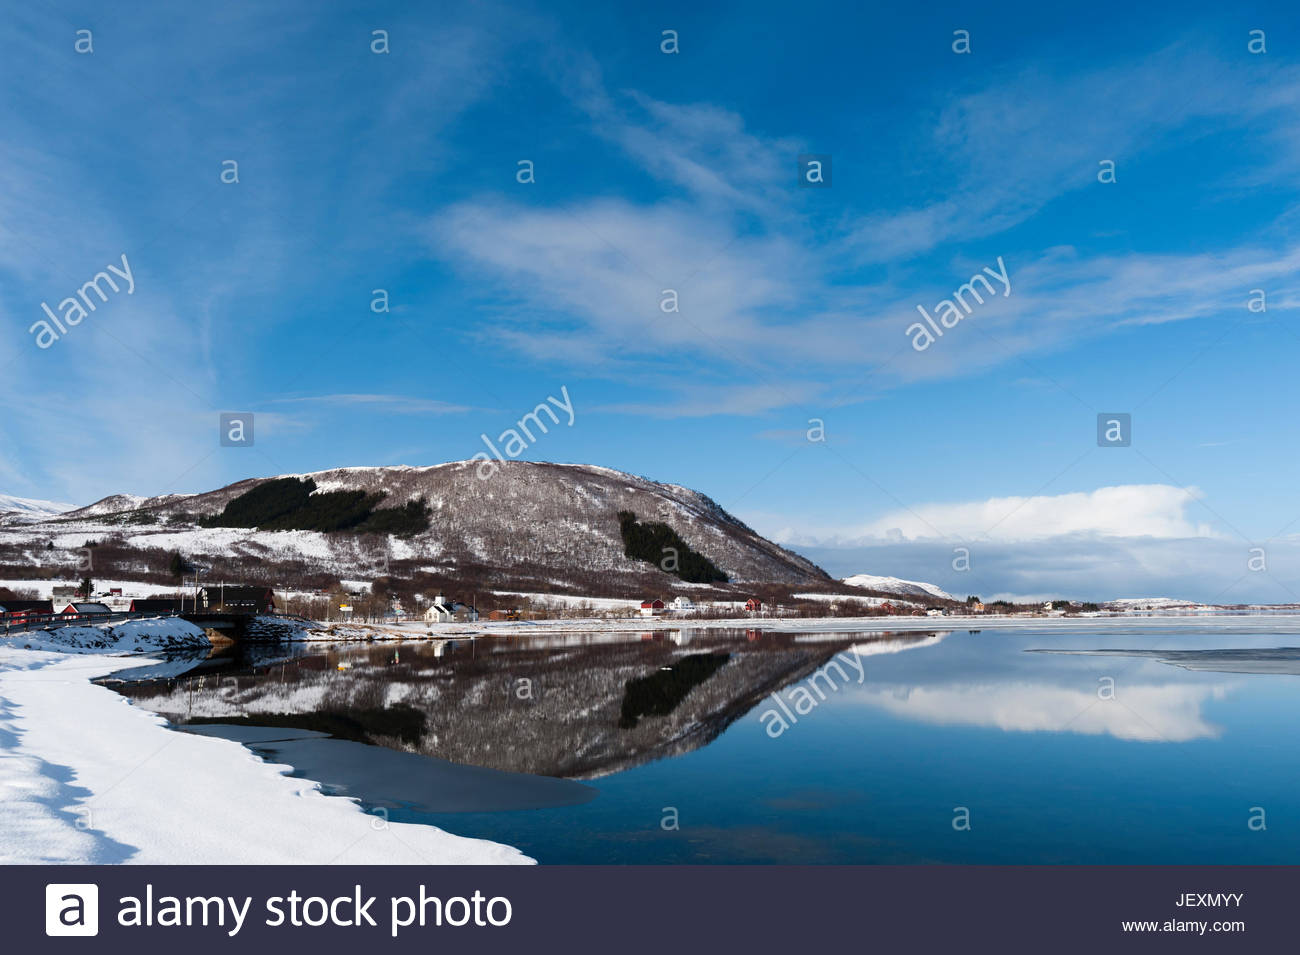 The small coastal village of Knutstad, with snowy shores and blue skies. - Stock Image